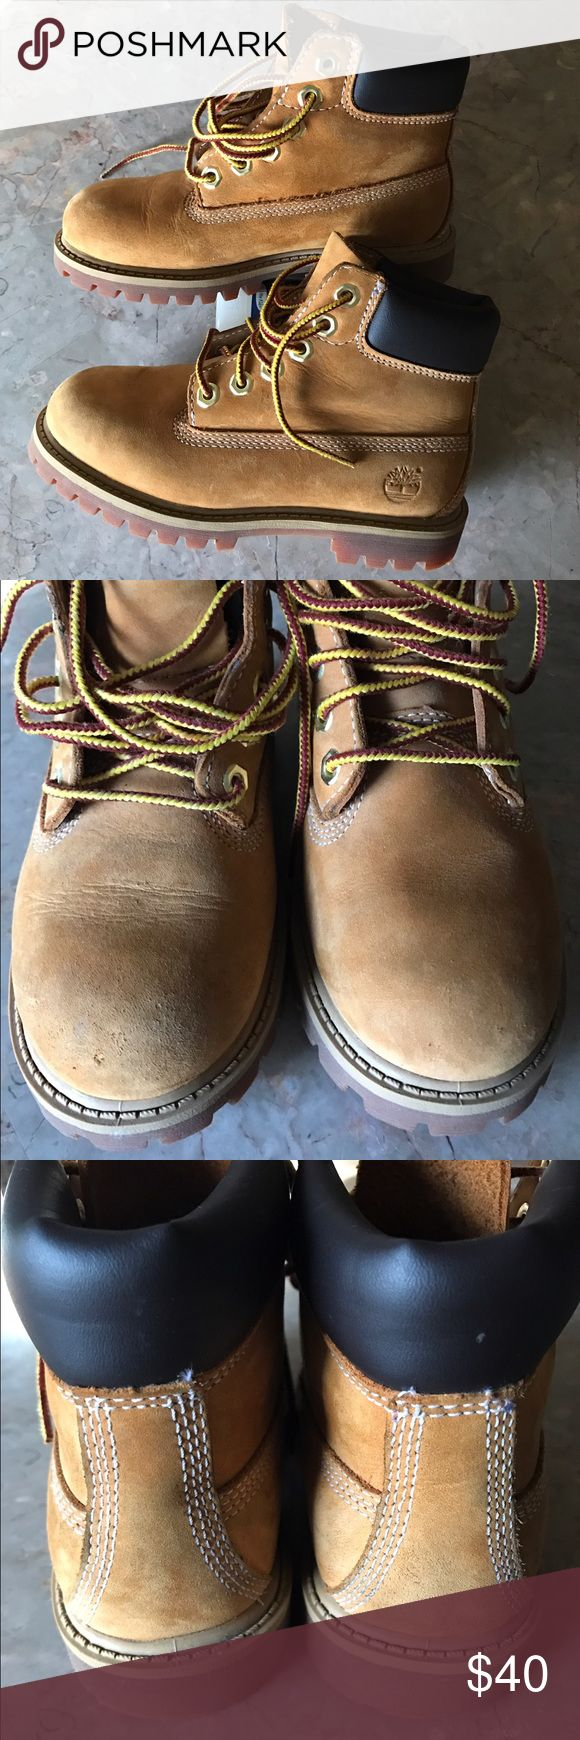 """Toddler 6"""" Timberland boots 11M Color: Wheat nubuck, premium full grain leather upper, seam-sealed waterproof construction, padded collar, steal shank for arch support, rubber lug outsole. Selling only because my son outgrew them! Still have a lot of wear left in them! Timberland Shoes Boots"""